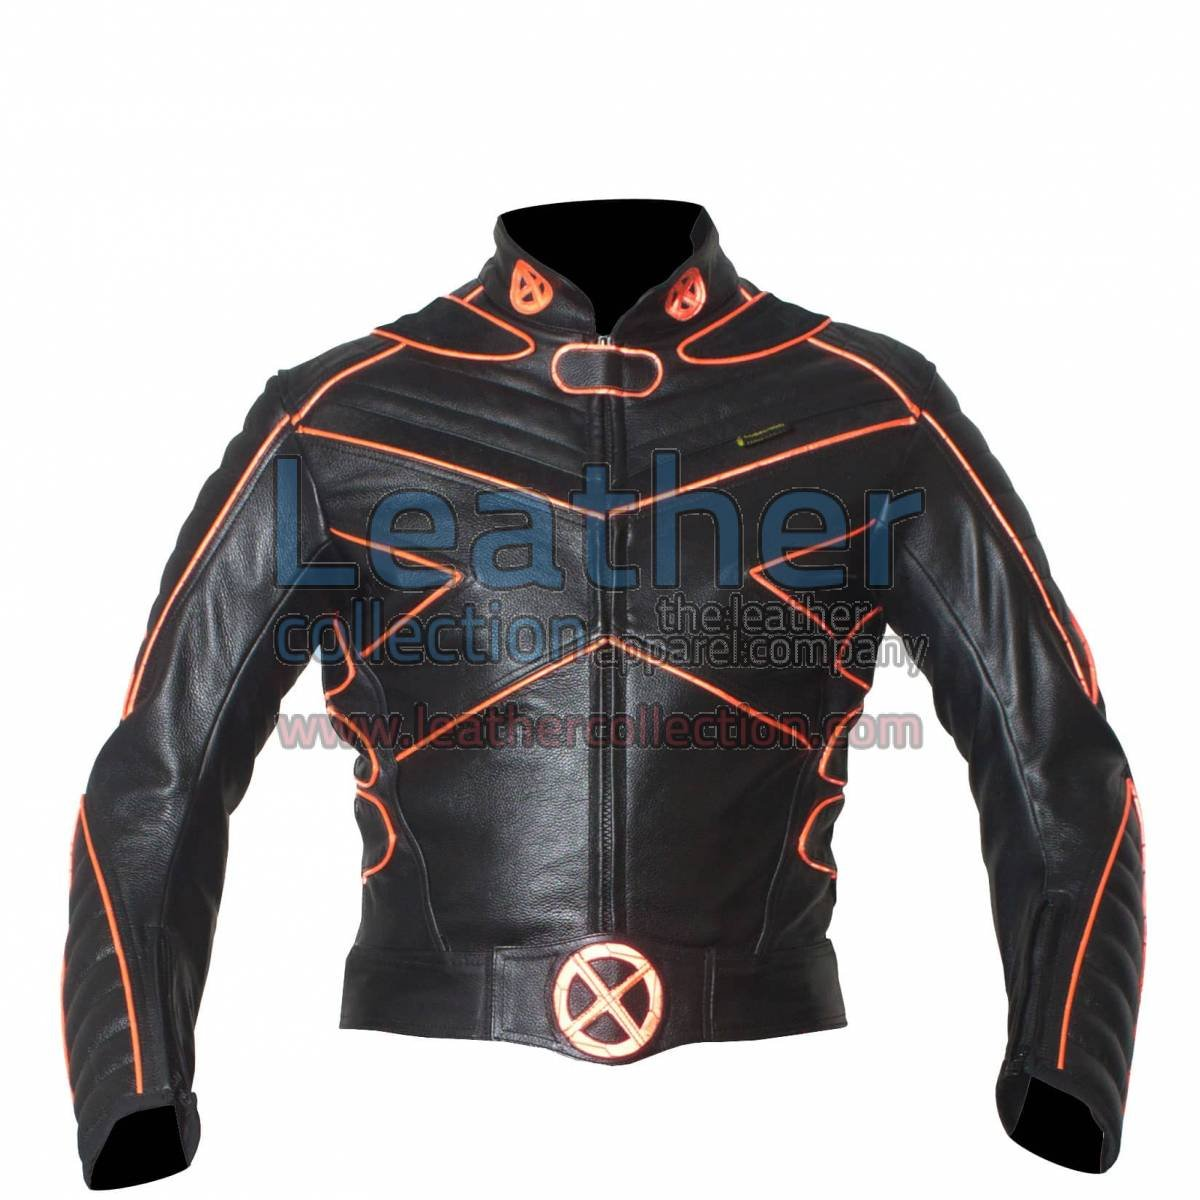 X-Man Motorbike Leather Jacket with Orange Piping